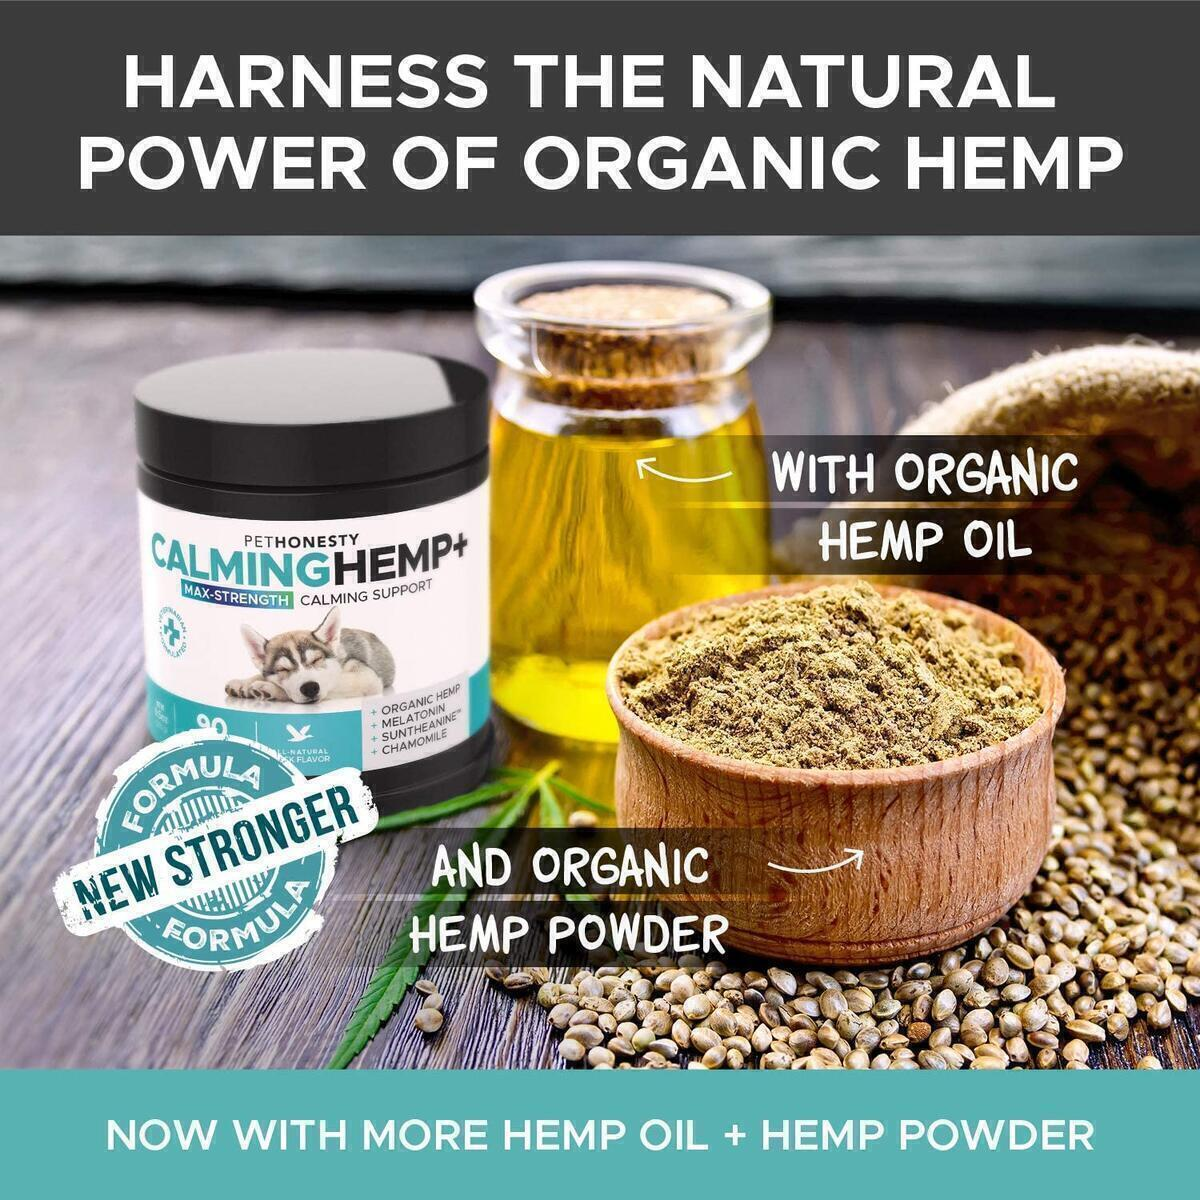 PetHonesty Calming Hemp + (Maximum Strength Calming Support)